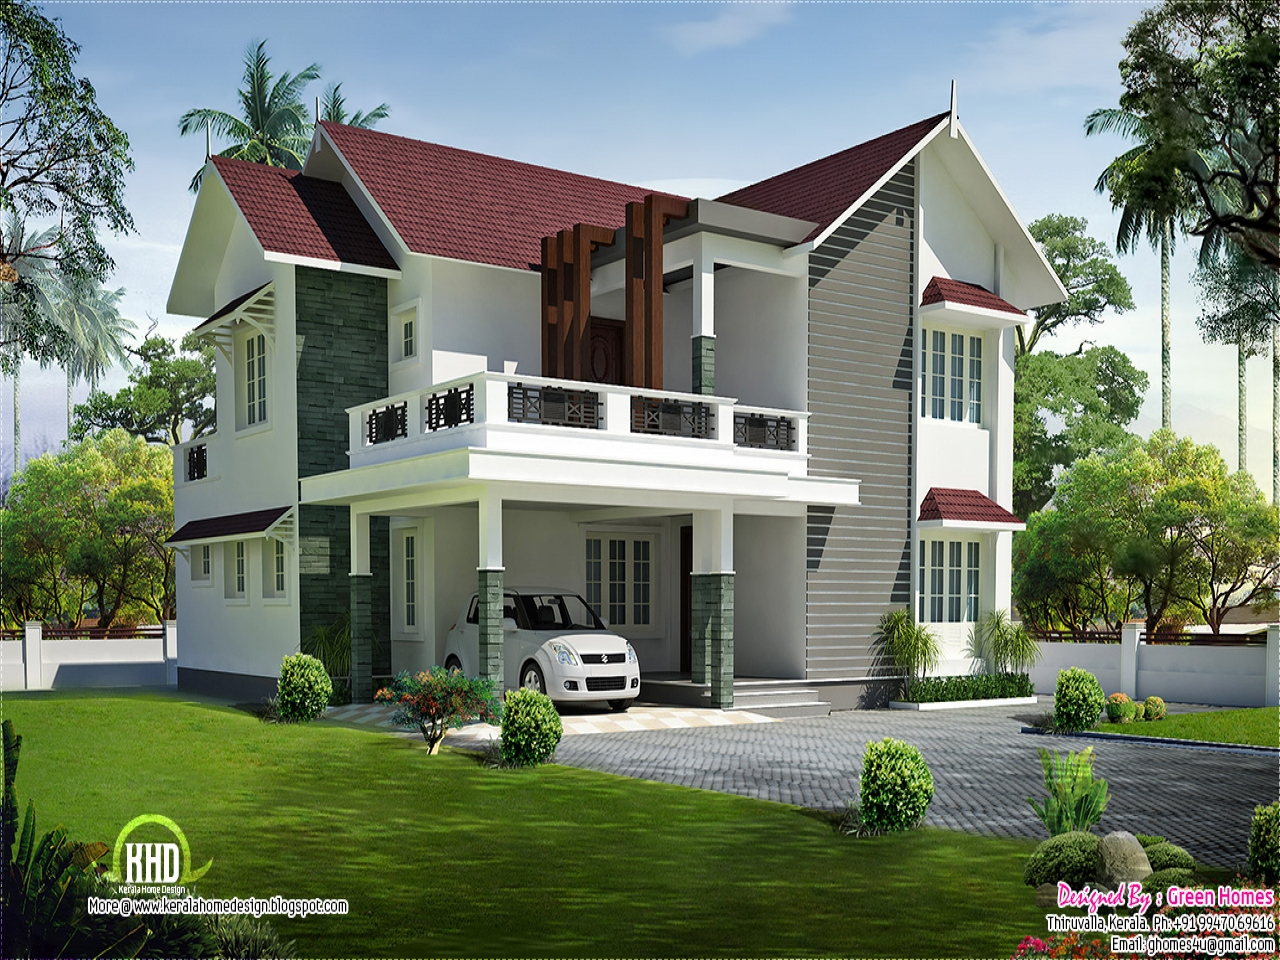 Beautiful home design beautiful photo gallery country for Beautiful home design gallery